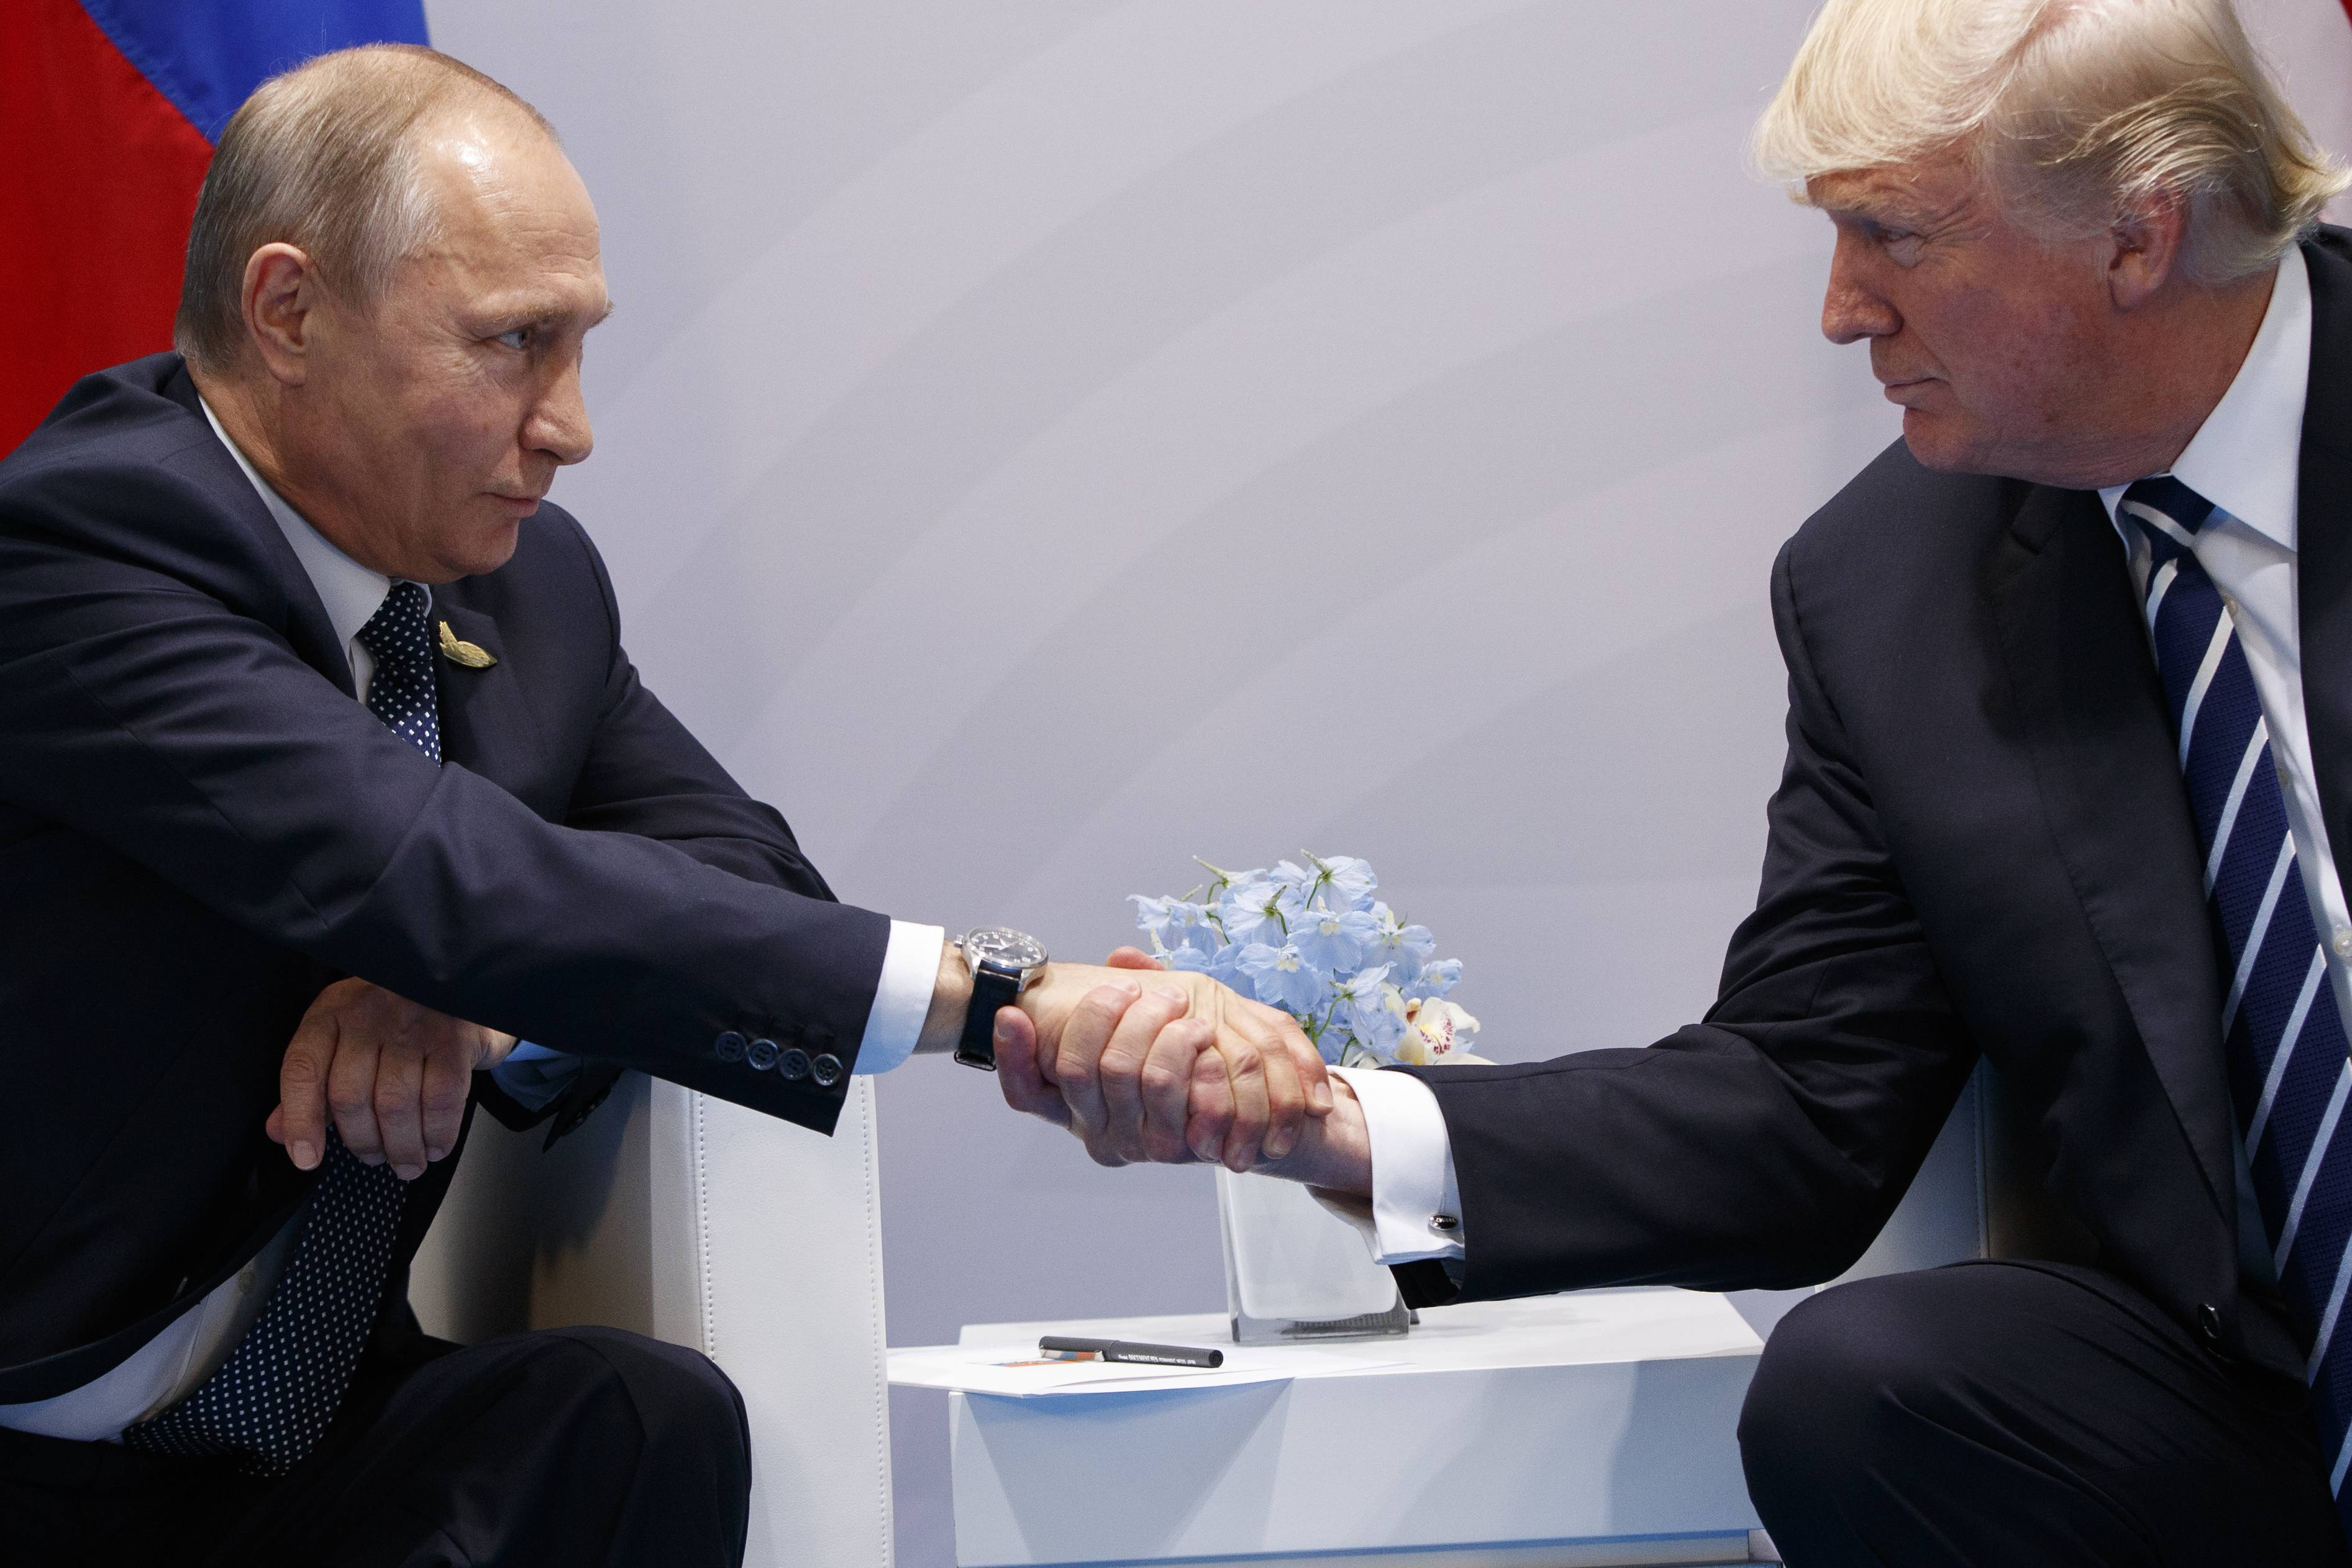 President Donald Trump shakes hands with Russian President Vladimir Putin at the G-20 Summit last July 7.